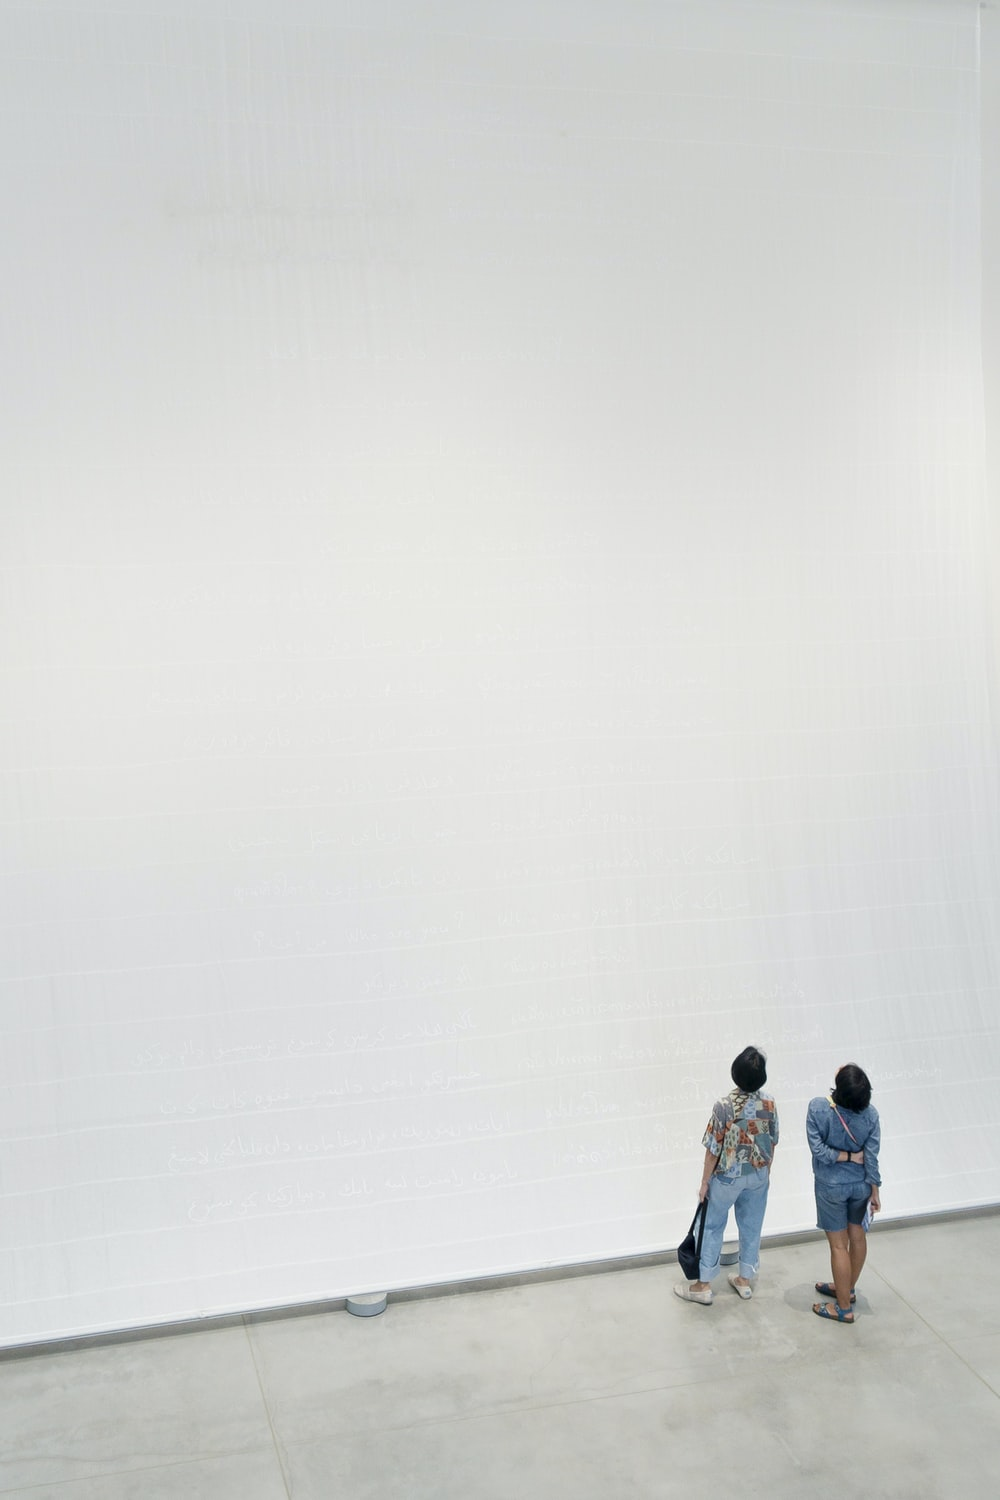 3 men and 2 women standing on white wall